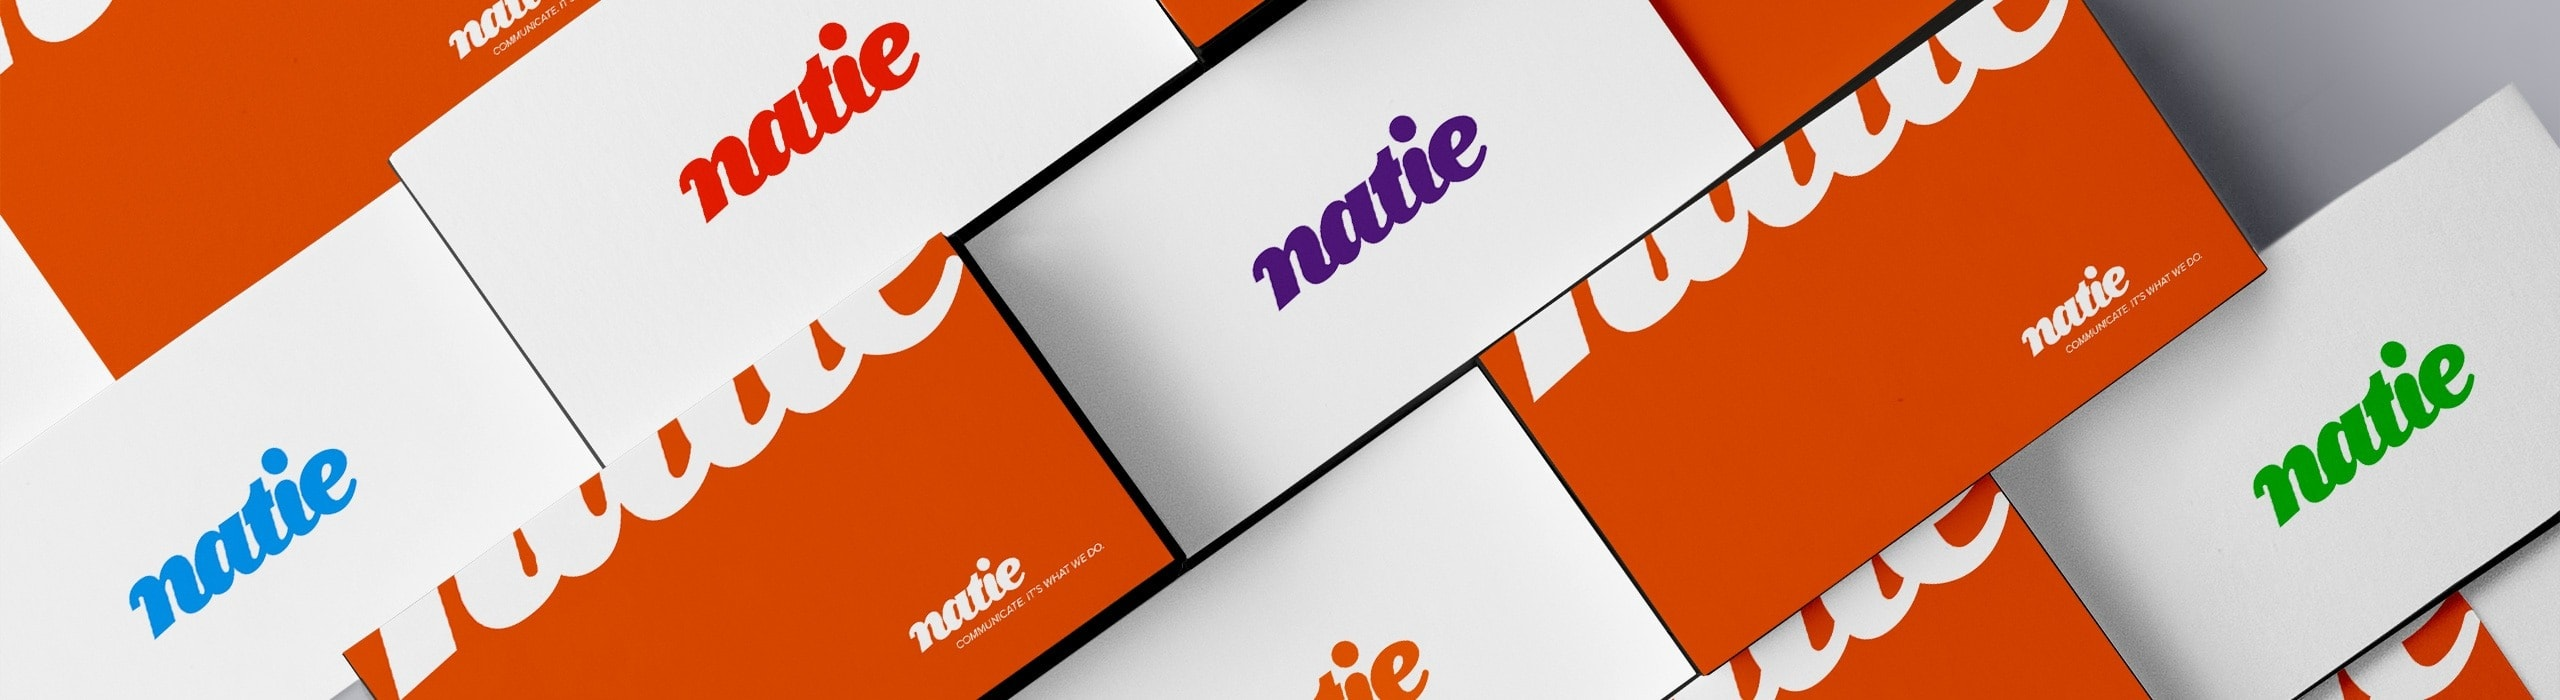 Natie - natie-rebrand-stickers - Natie Branding Agency